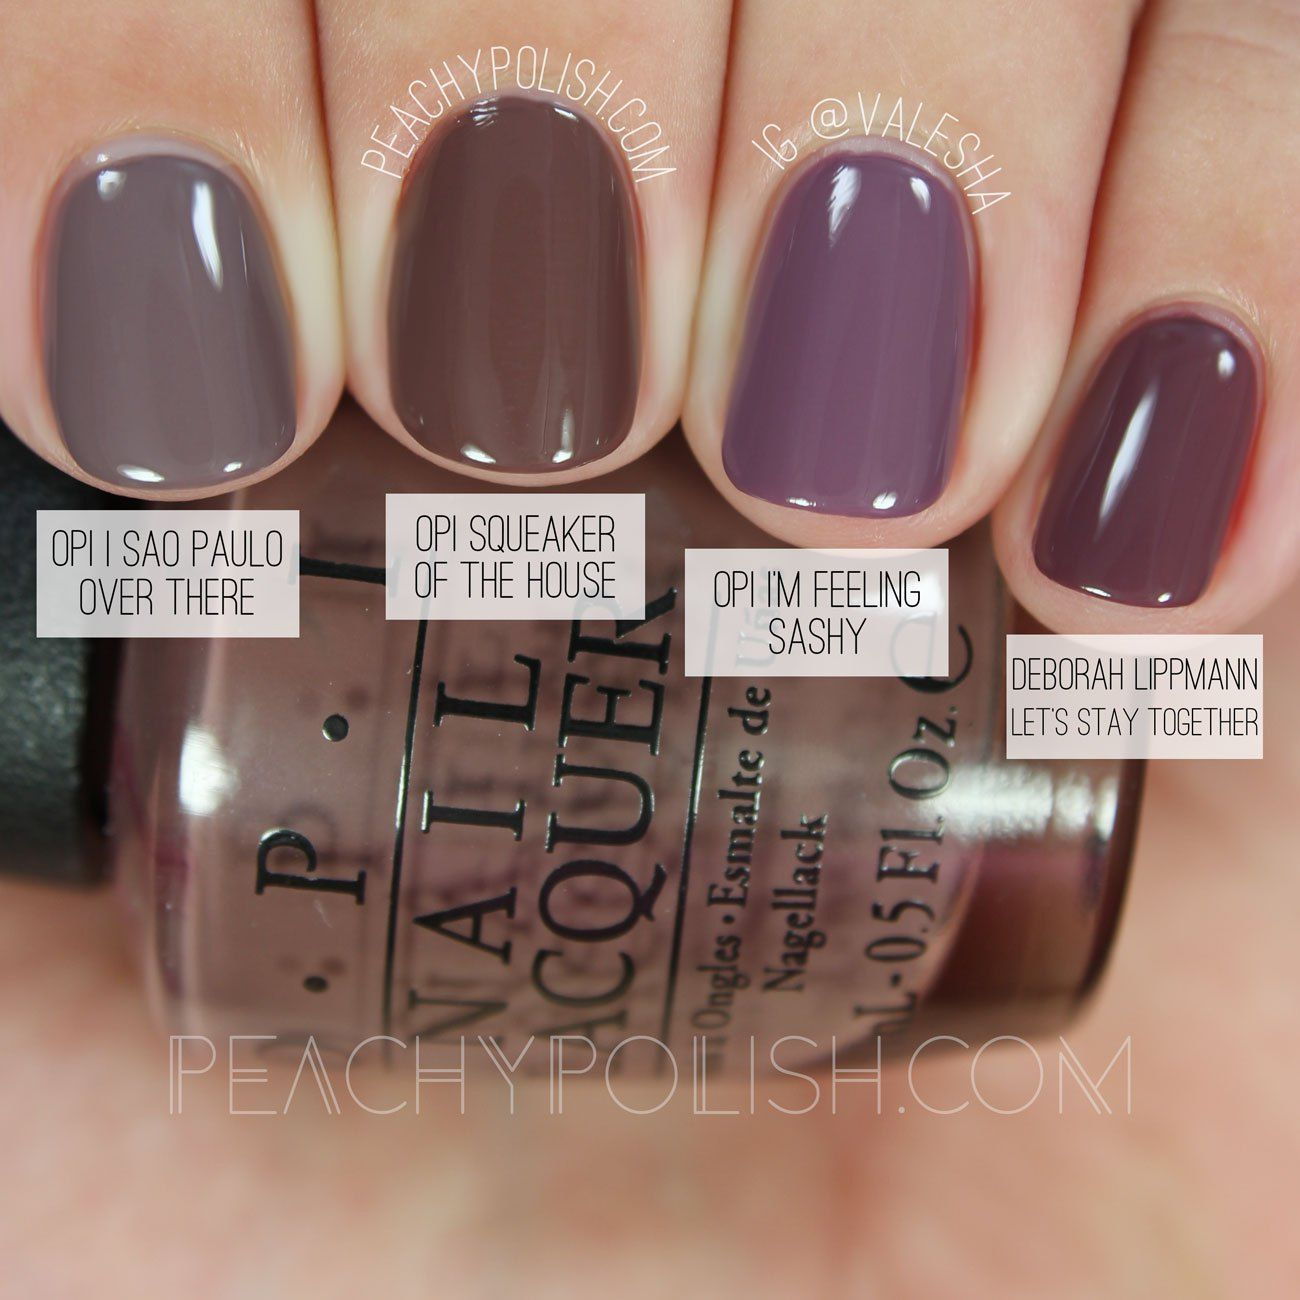 Opi Comparisons Washington D C Collection With Images Nail